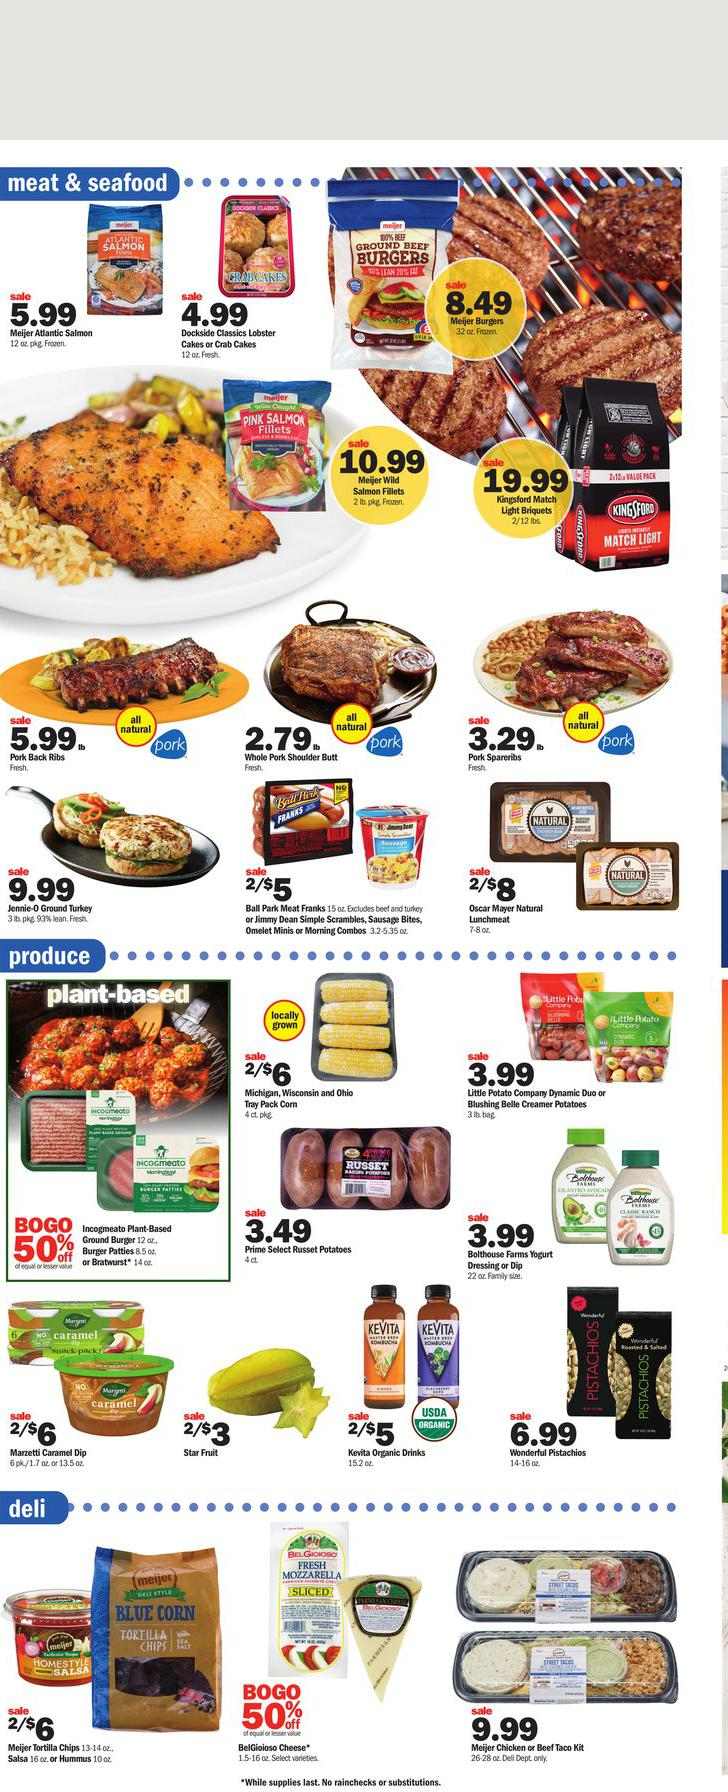 12.09.2021 Meijer ad 4. page